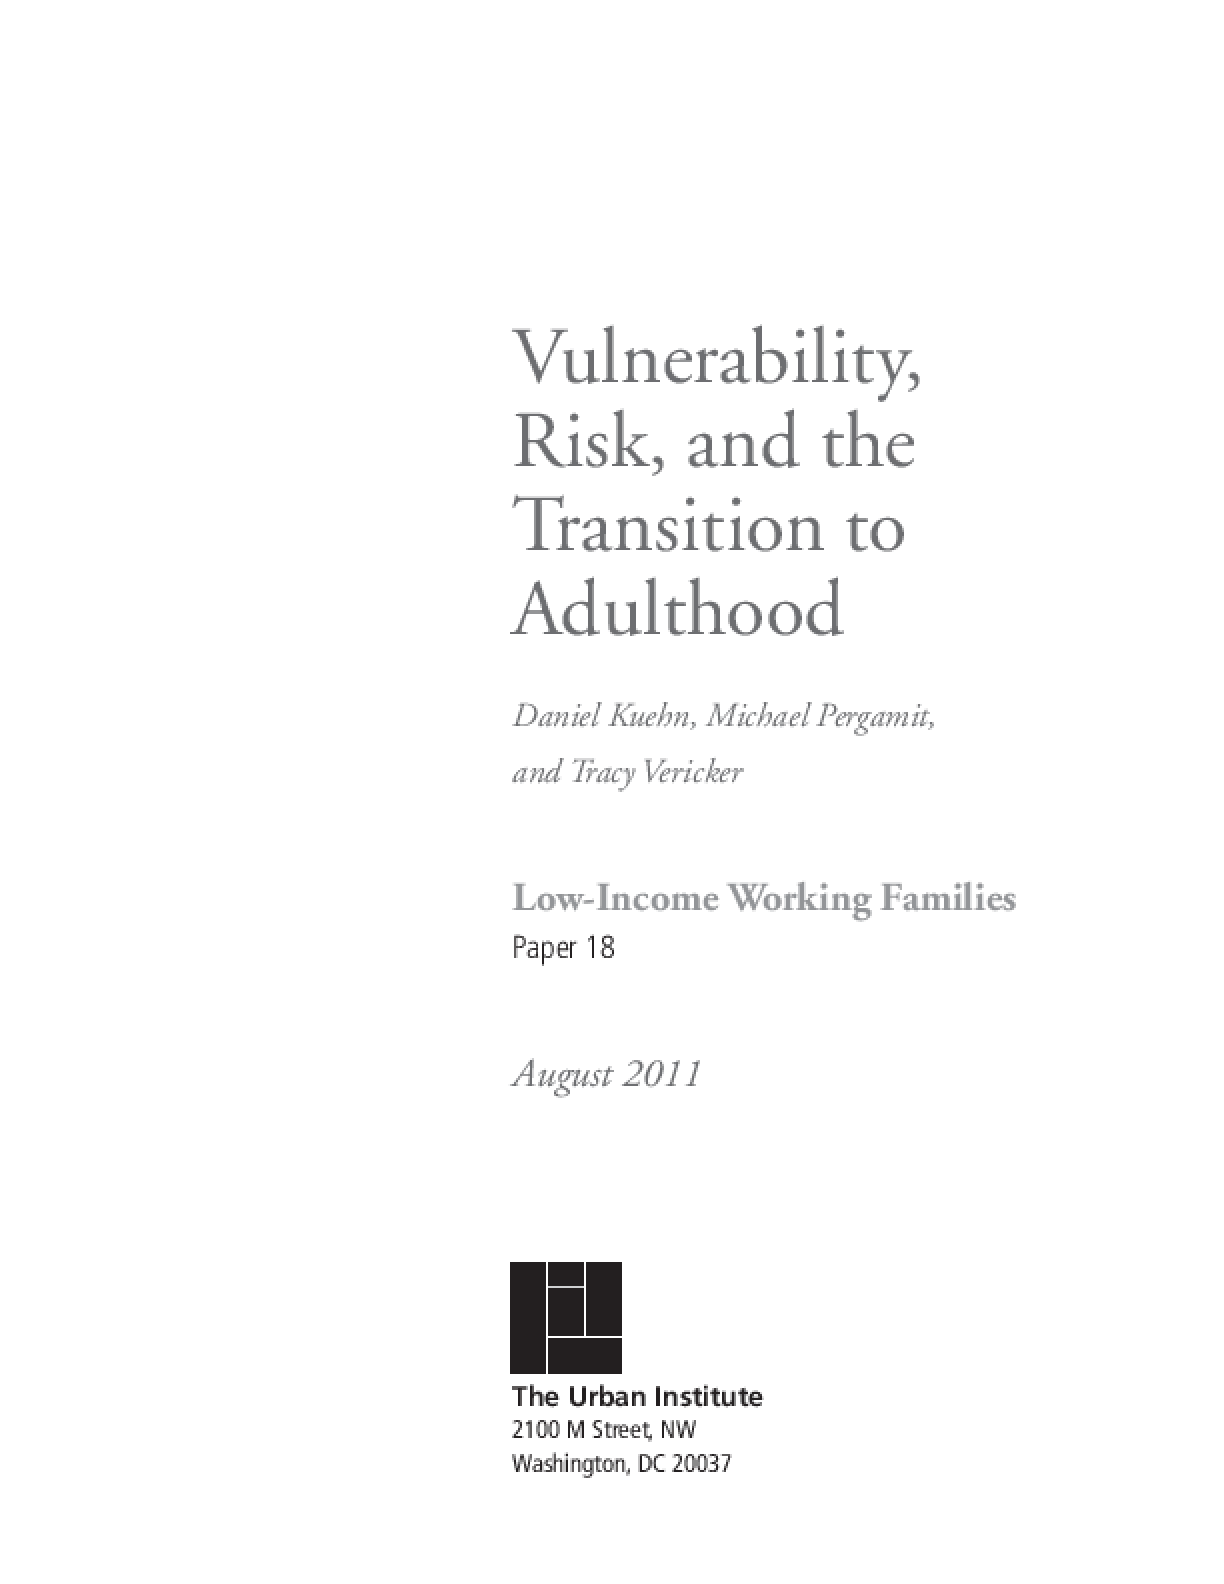 Vulnerability, Risk, and the Transition to Adulthood